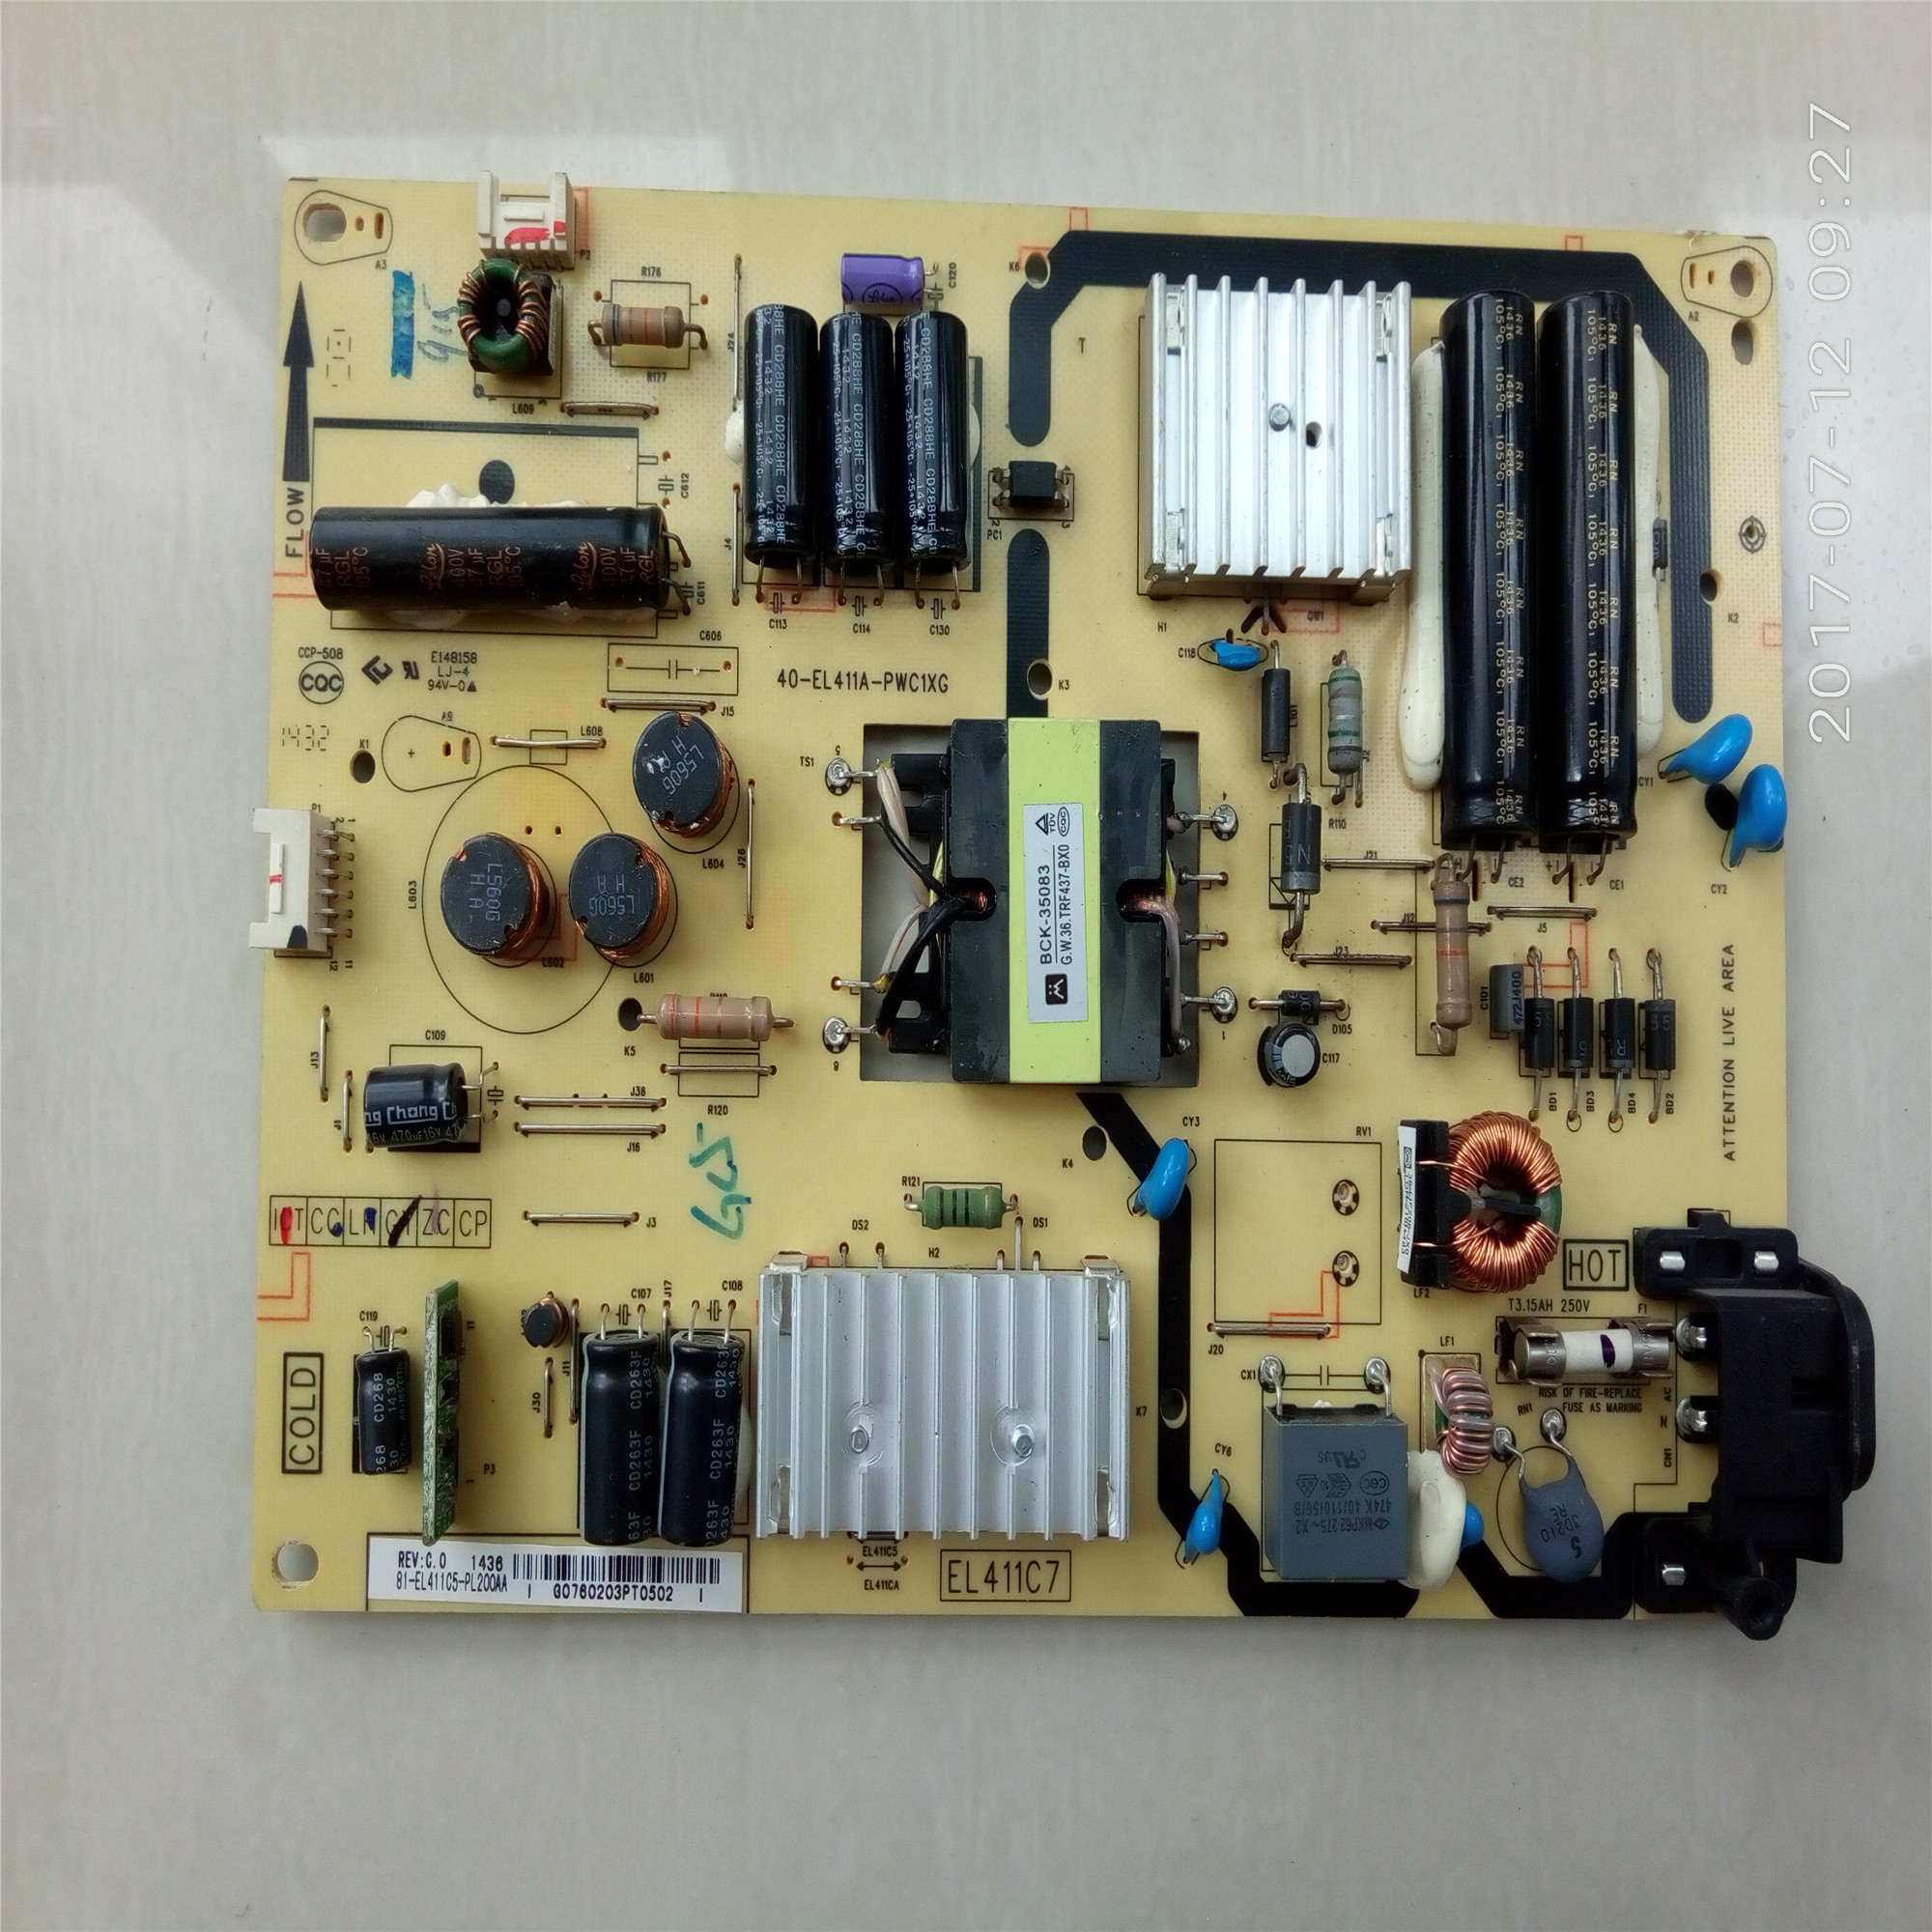 TCLL48F3700A48 inch LCD TV LCD power board motherboard, high voltage power supply board has J0846